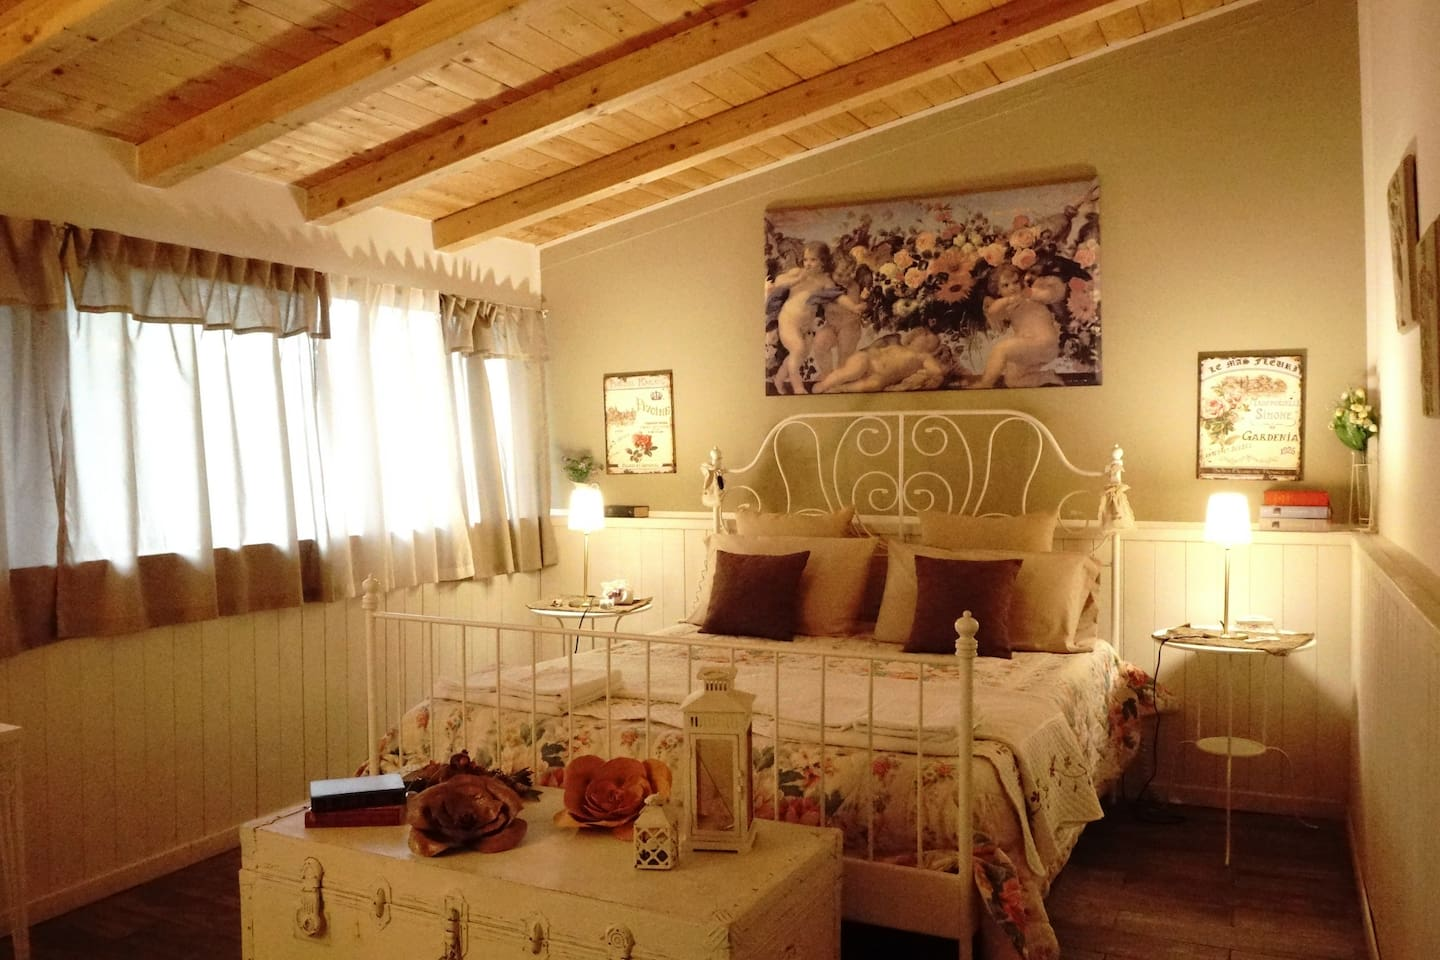 Our warm shabby chic double room